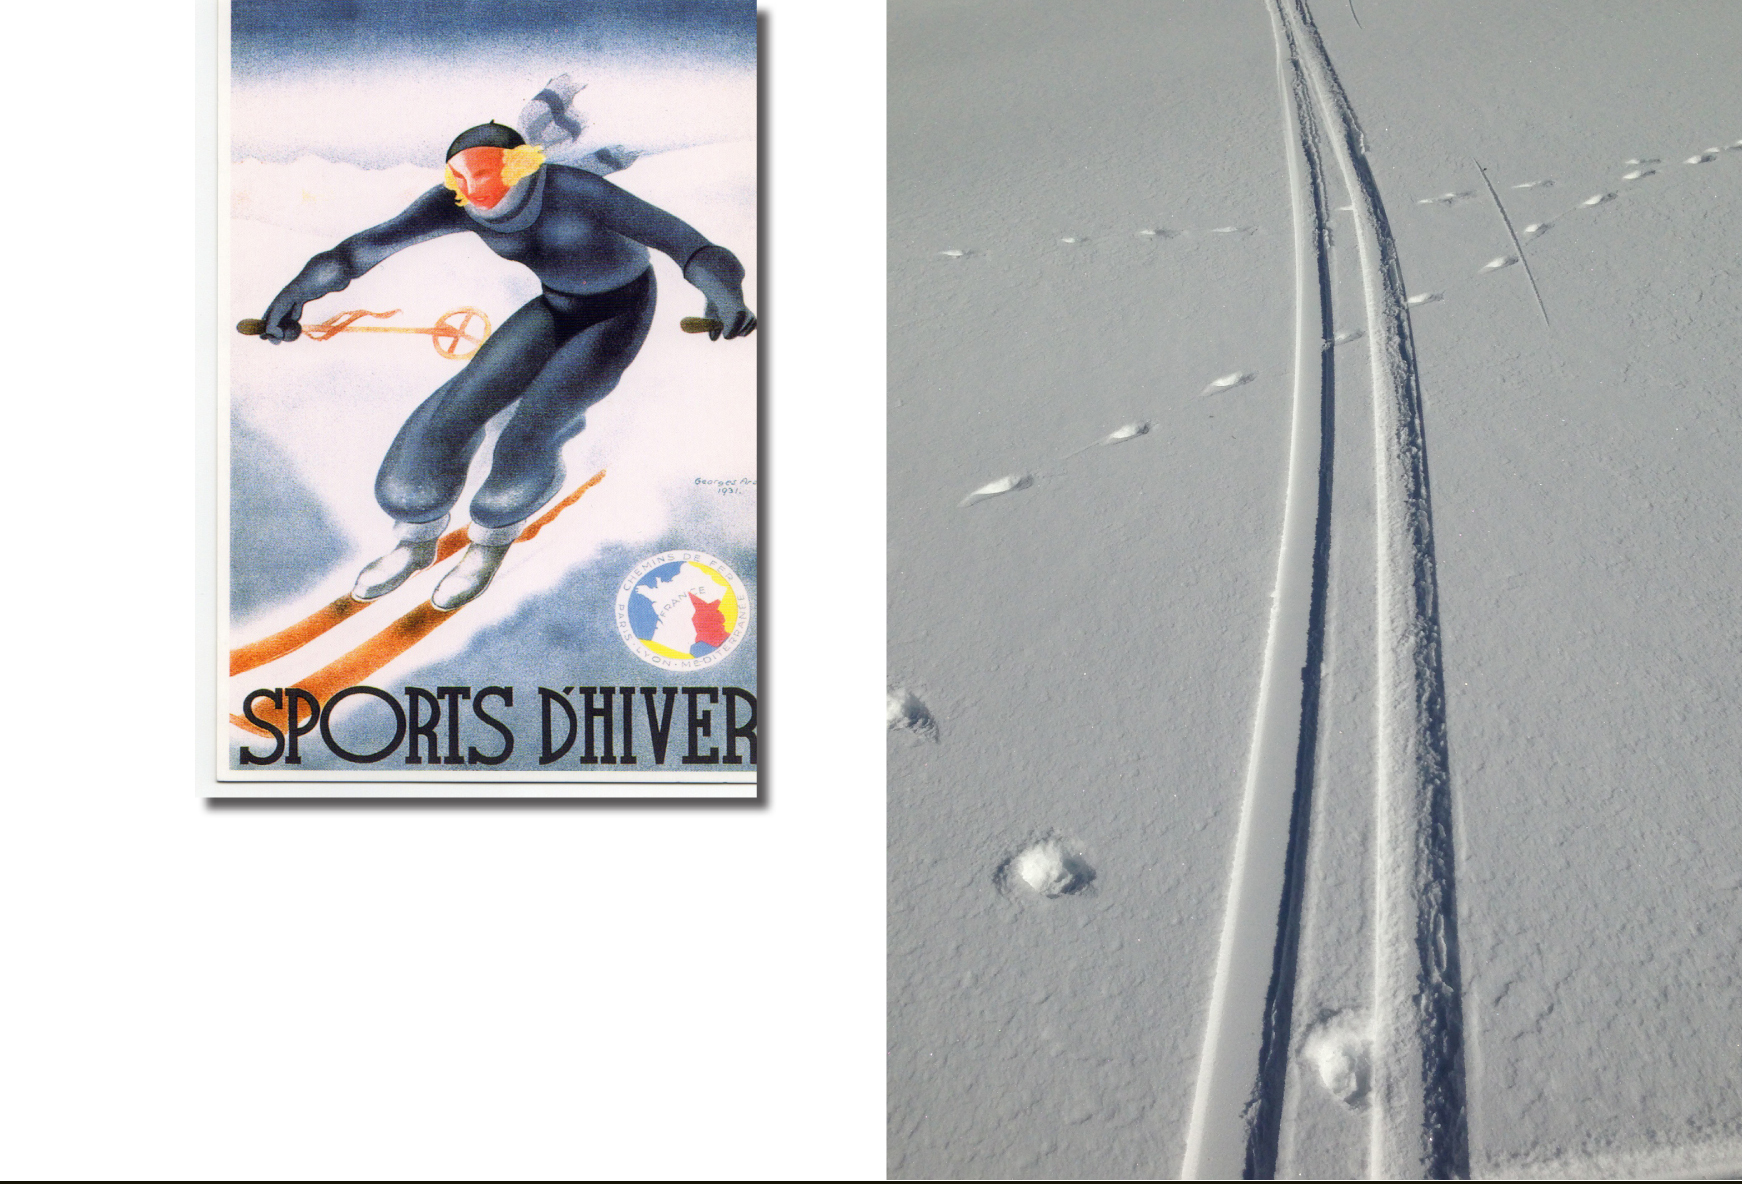 Sports D'hiver